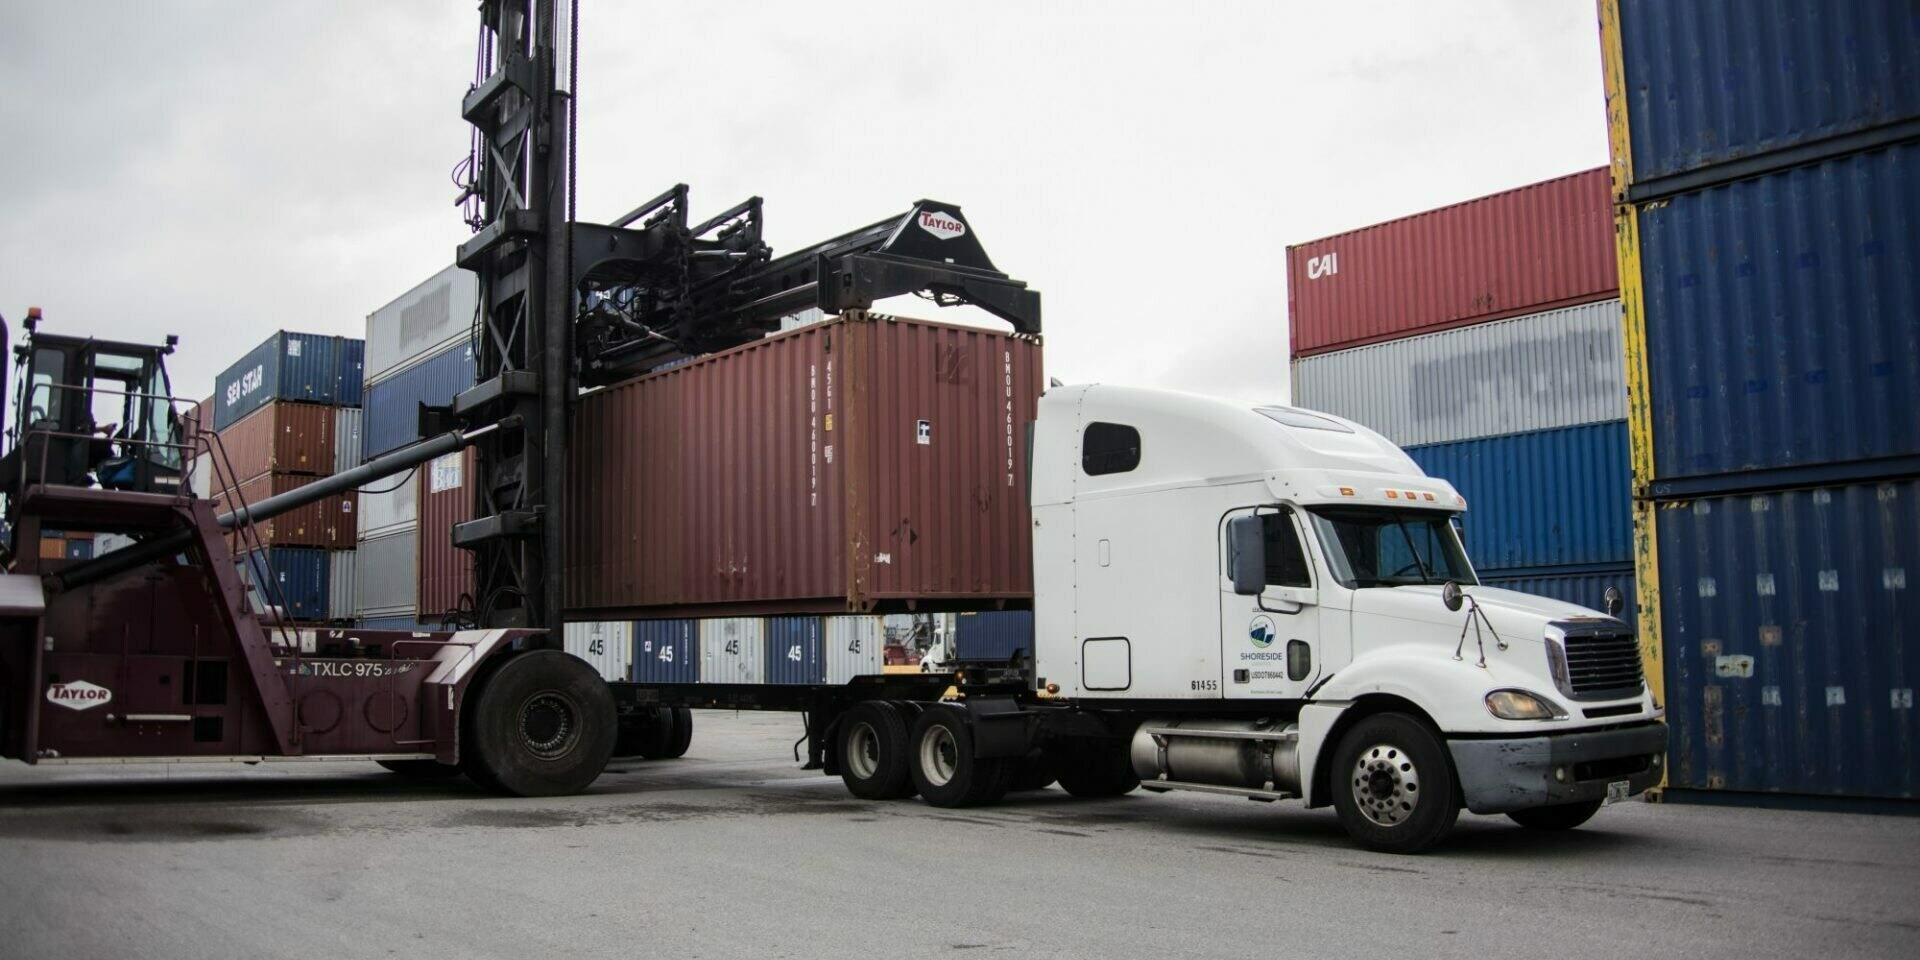 Loading containers on a transport truck